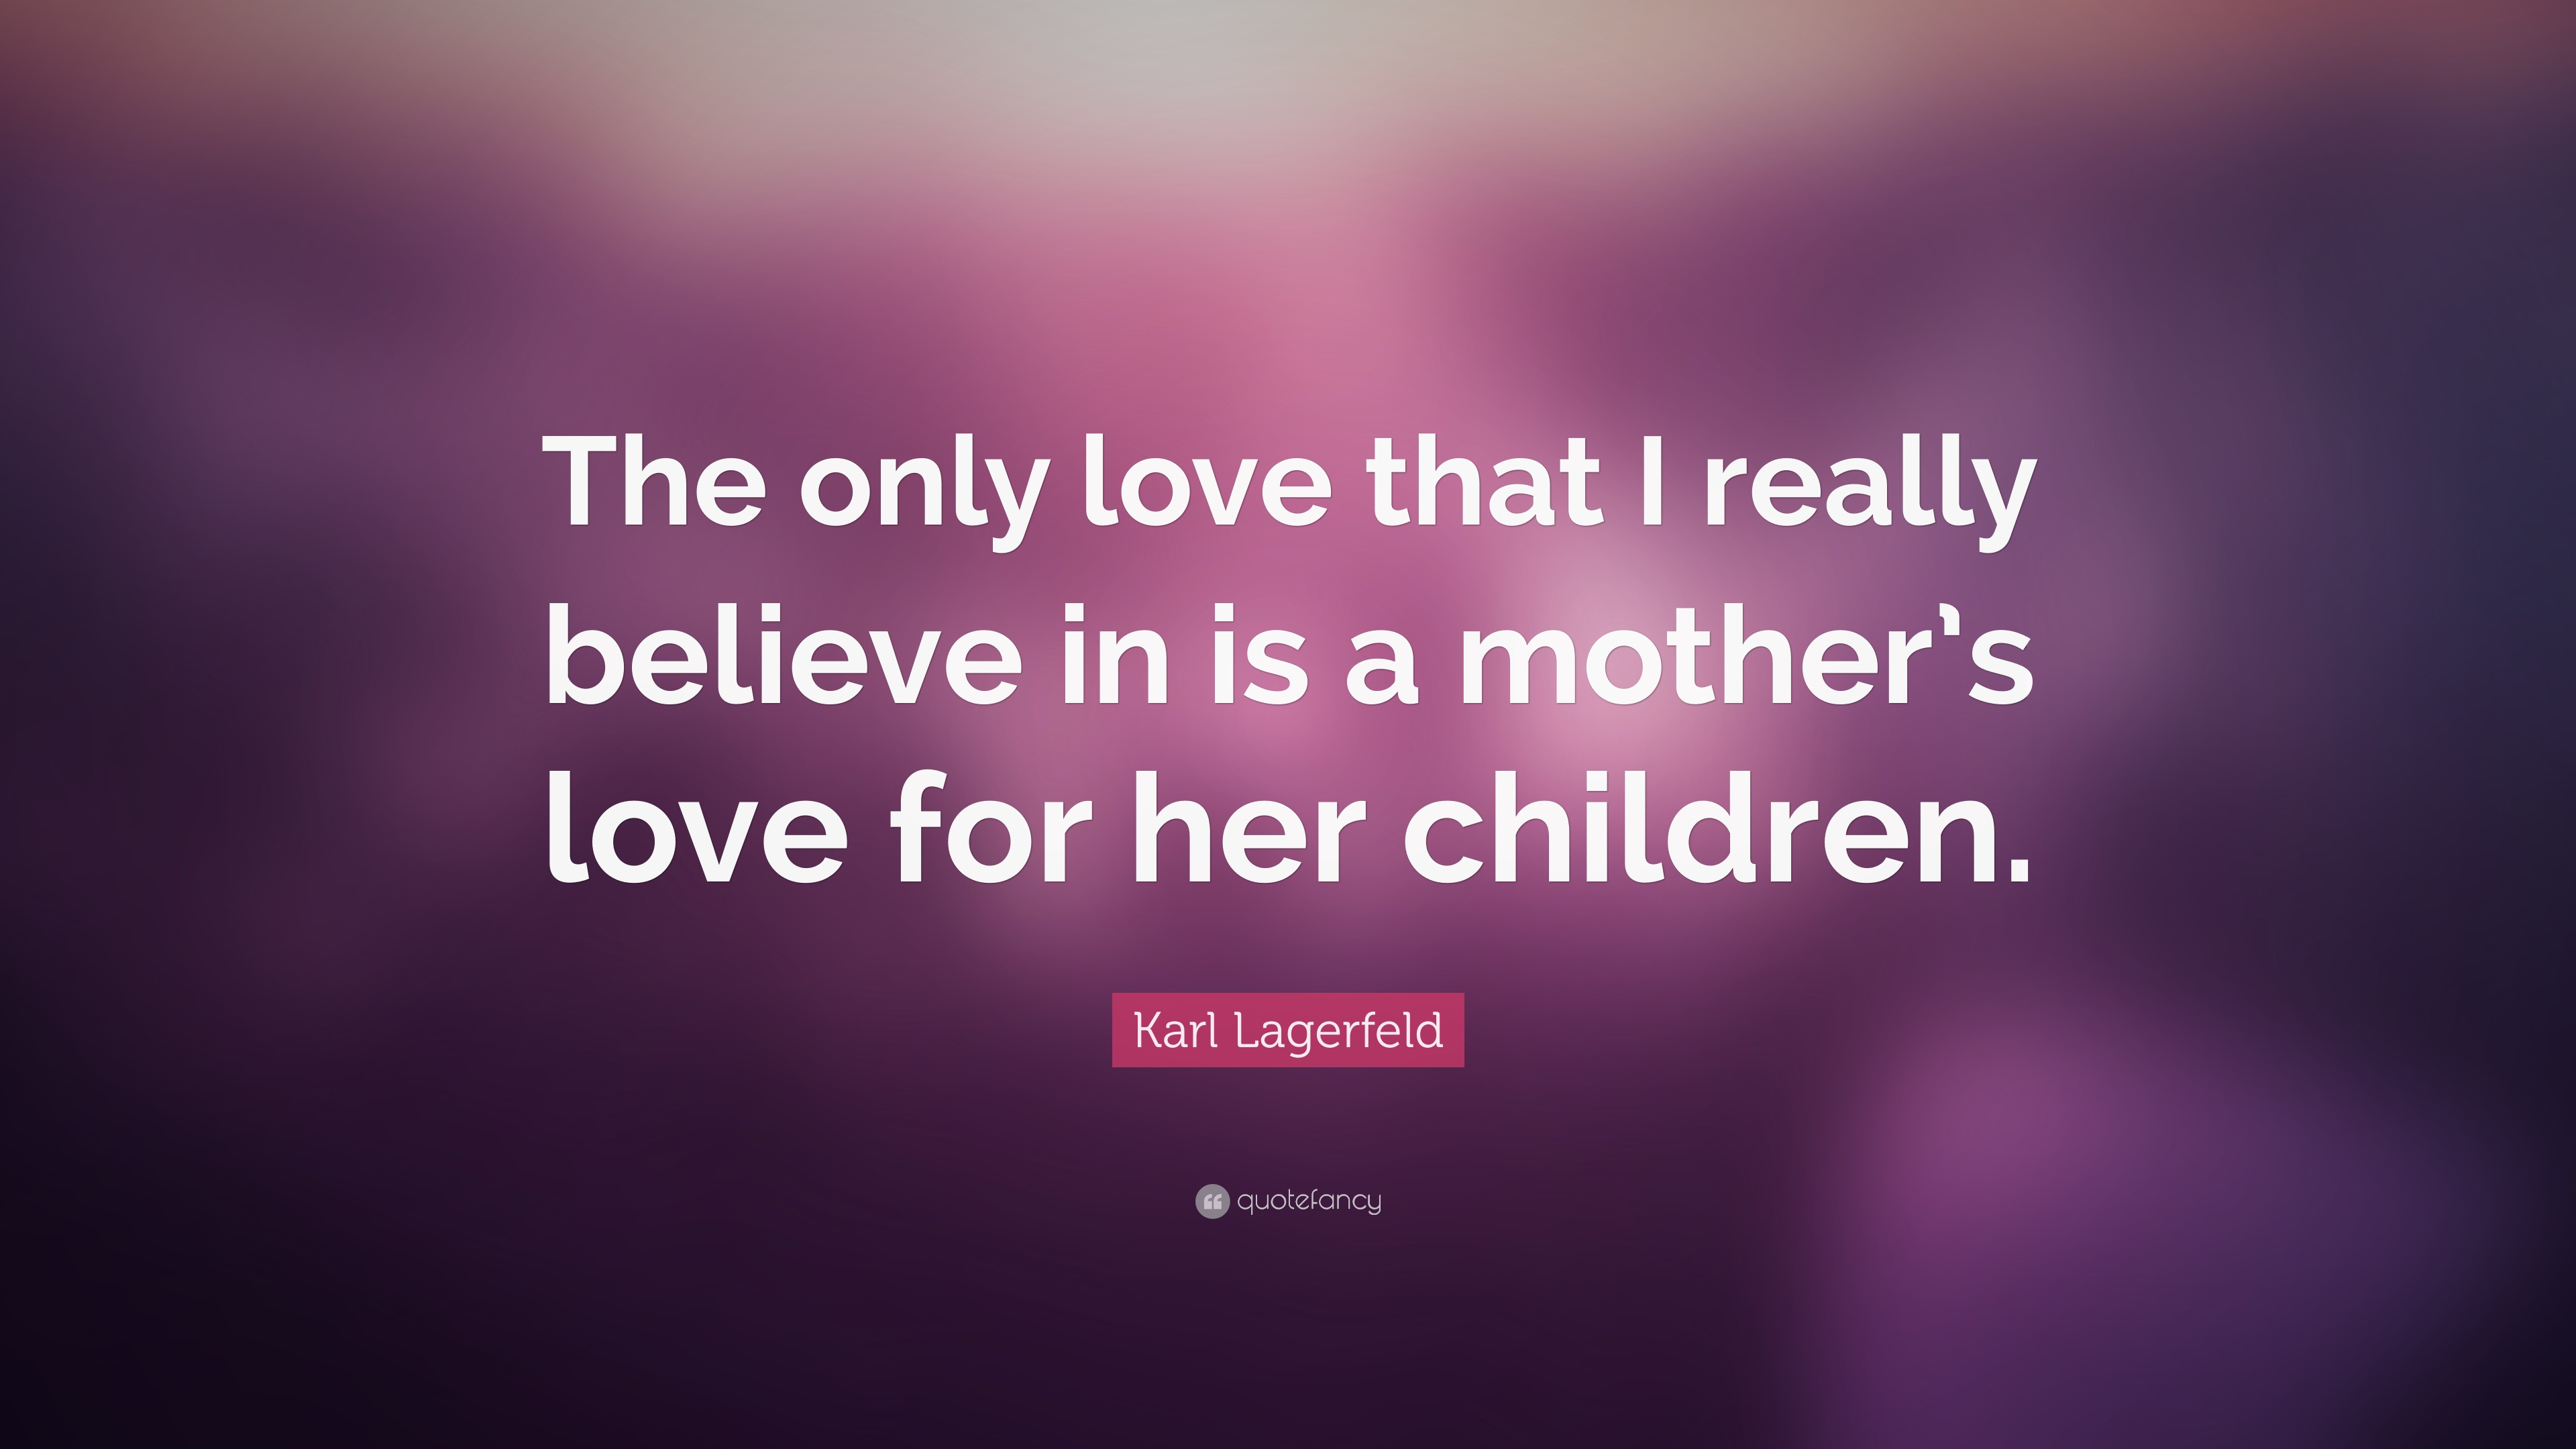 Karl Lagerfeld Quote The Only Love That I Really Believe In Is A